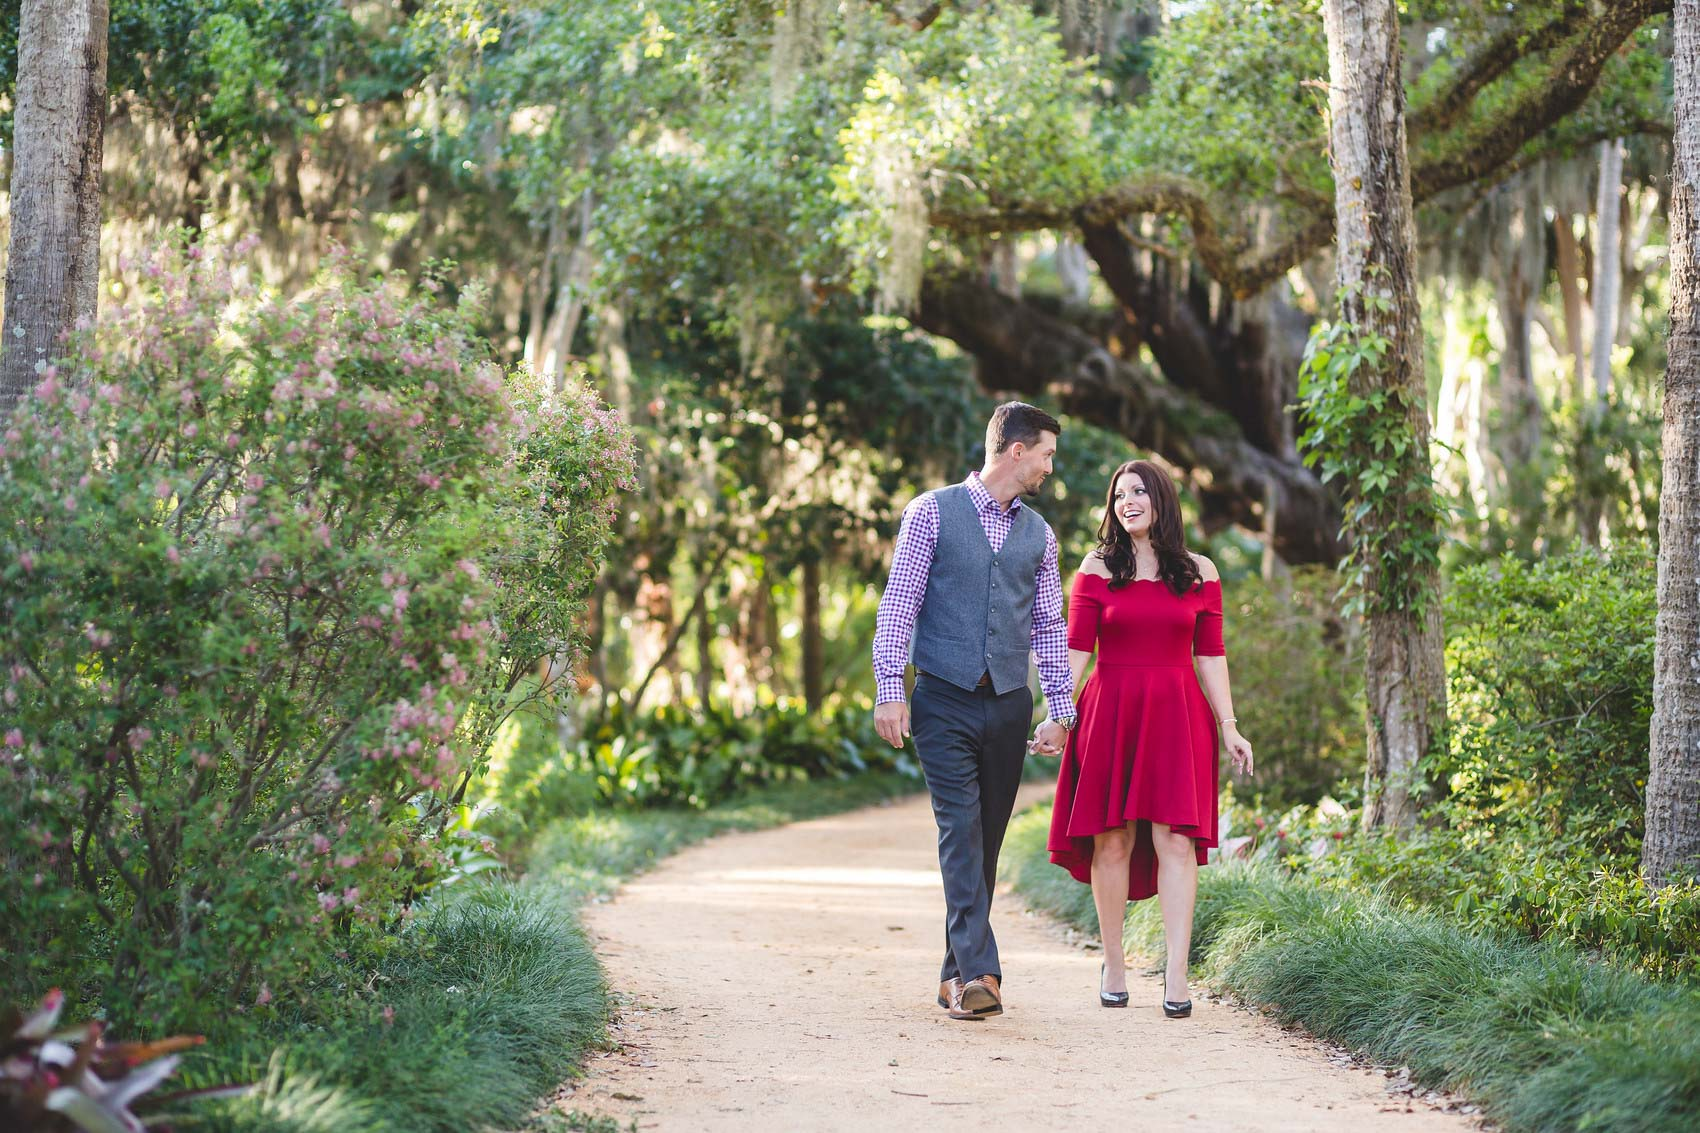 adam-szarmack-jacksonville-wedding-photographer-washington-oaks-gardens-state-park-engagement-10.jpg